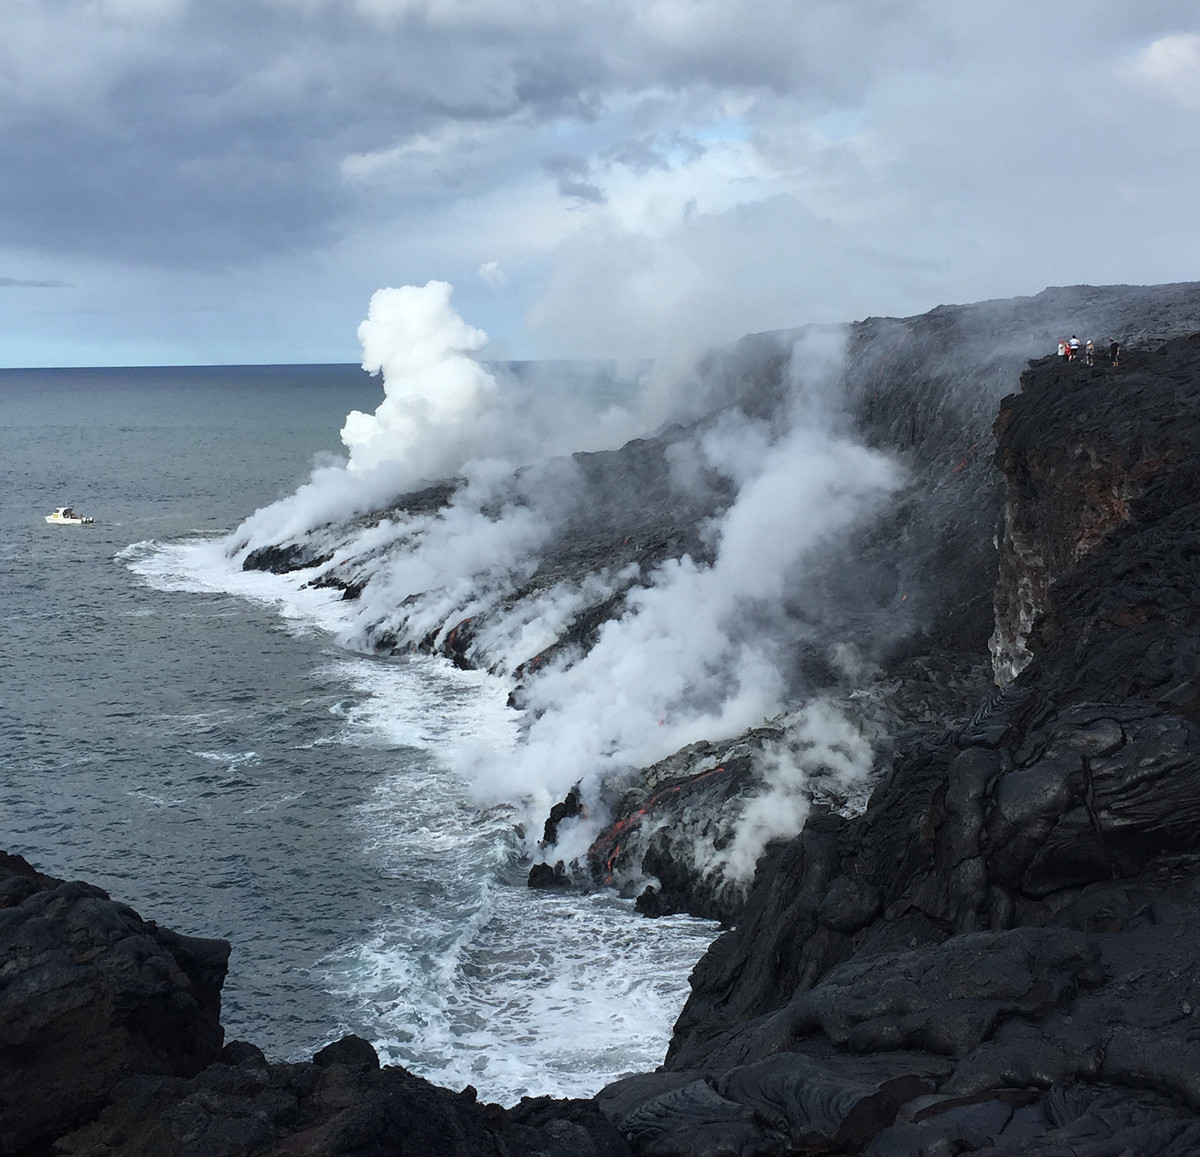 (USGS photo) The white plume formed by the interaction of lava and seawater is a corrosive mixture of super-heated steam, hydrochloric acid, and tiny particles of volcanic glass, all of which should be avoided. Lava deltas (new land formed at the ocean entry) can collapse without warning. Should the lava delta shown here collapse, fragments of molten lava and blocks of hot rock would be thrown both inland and seaward, potentially impacting people on the cliff above the ocean entry and in the boat in front of the delta, scientists say.